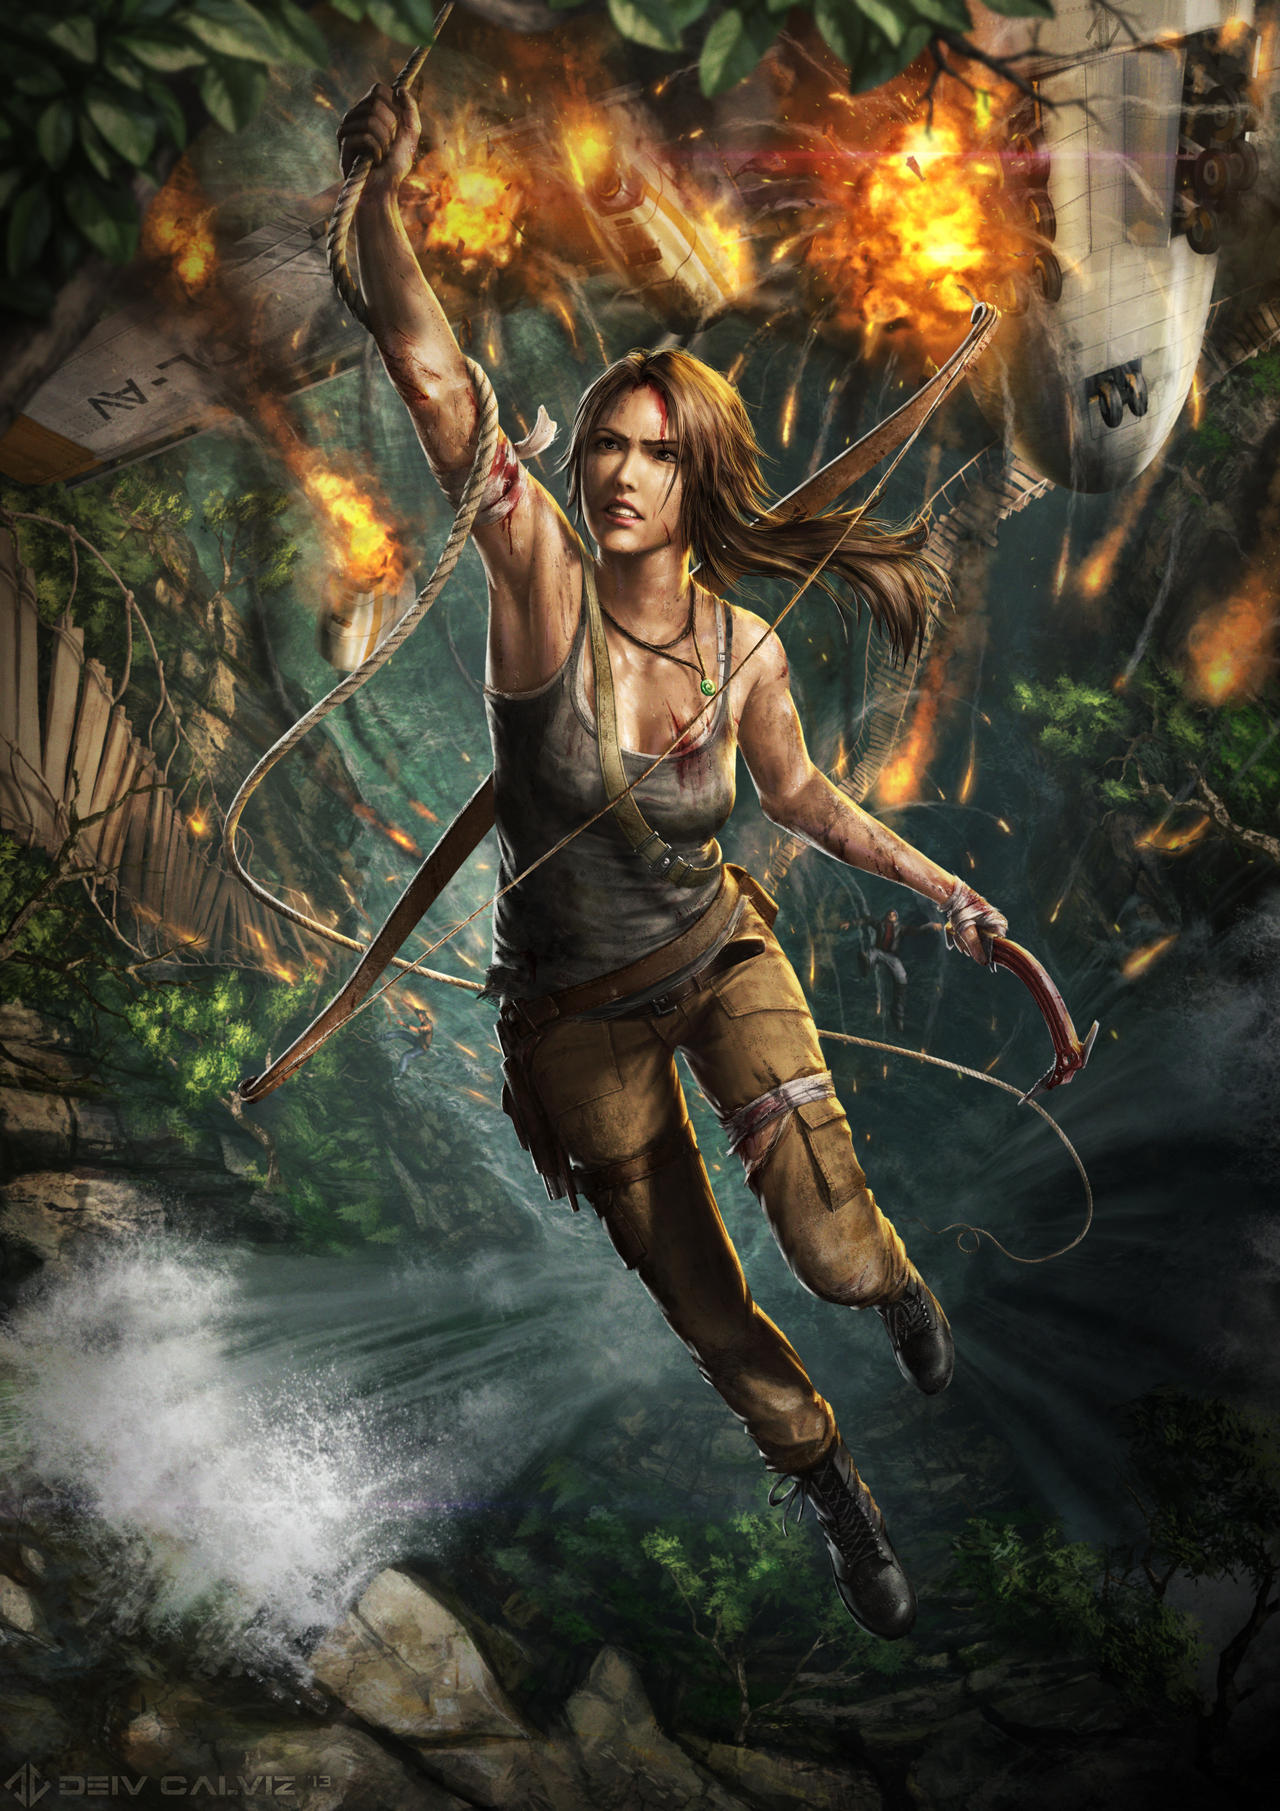 Tomb Raider Reborn by DeivCalviz